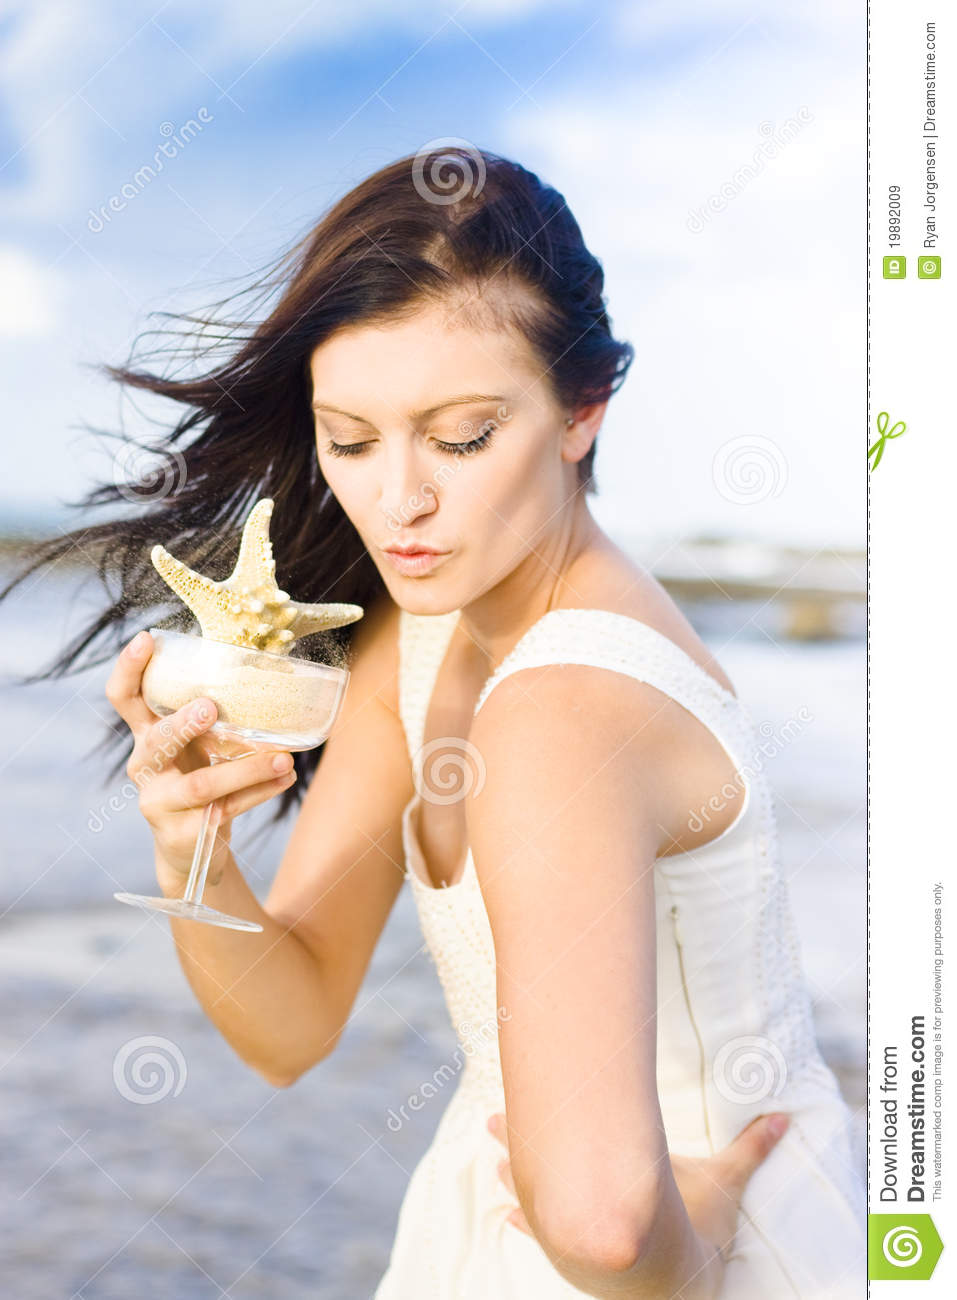 Woman Holding Star Fish Cocktail Royalty Free Stock Images